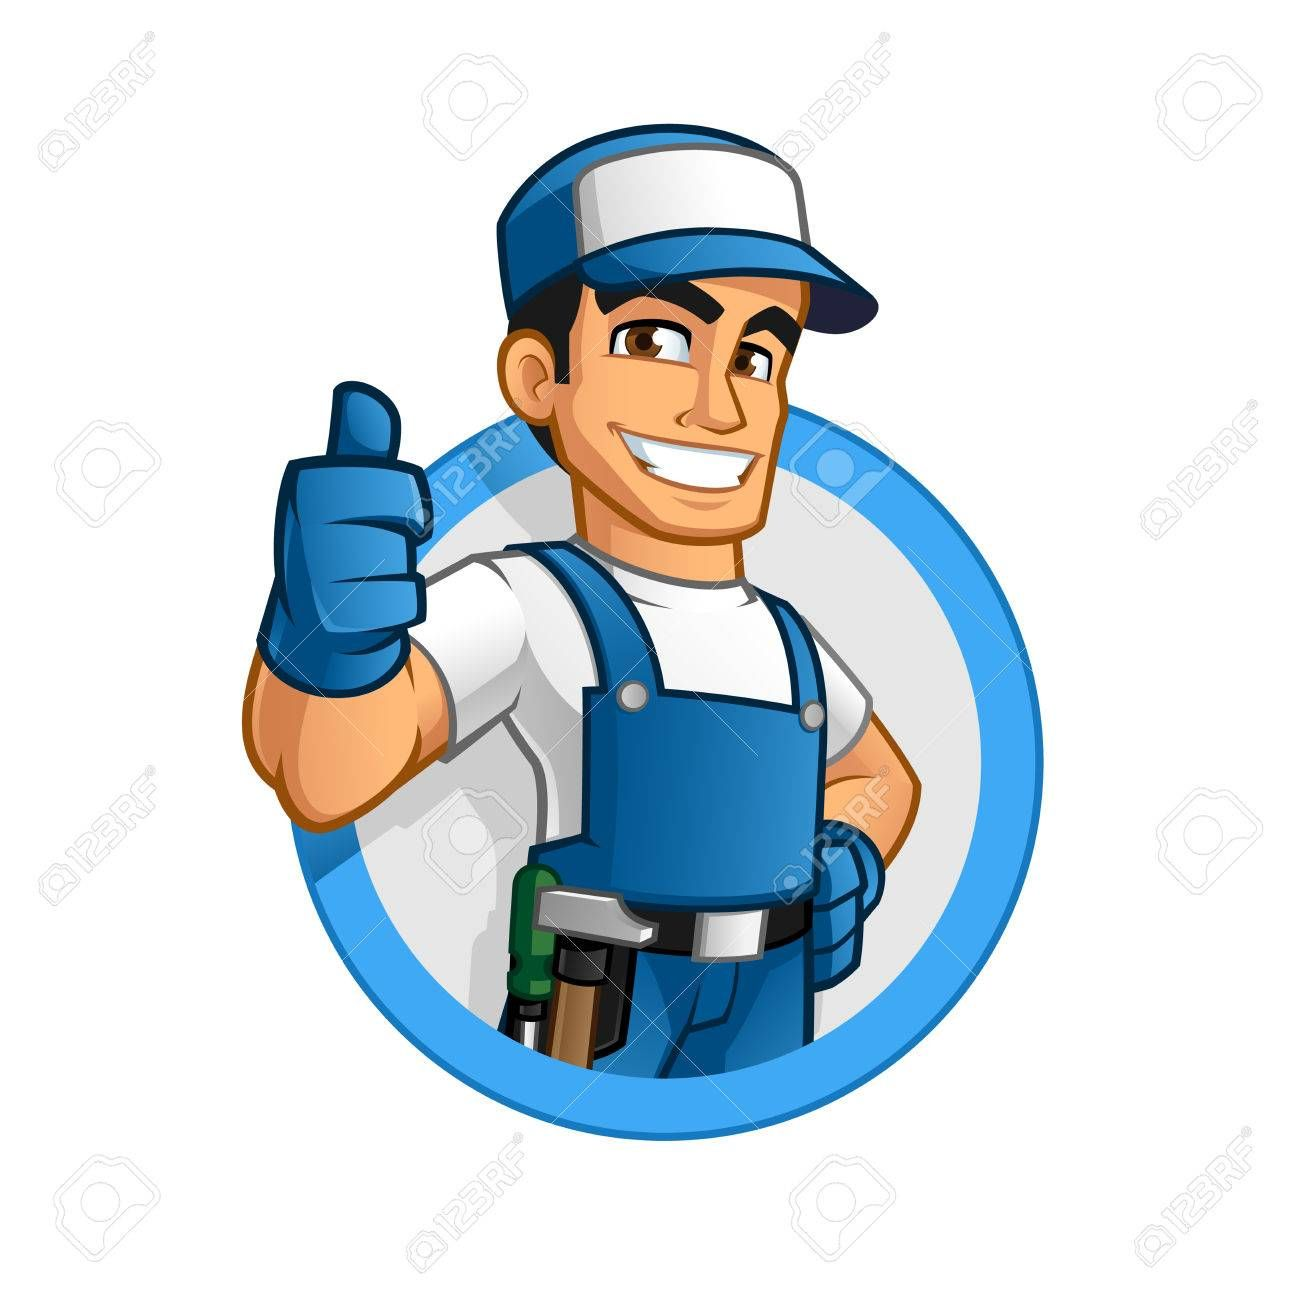 Handyman wearing work clothes and a belt, with tool ,